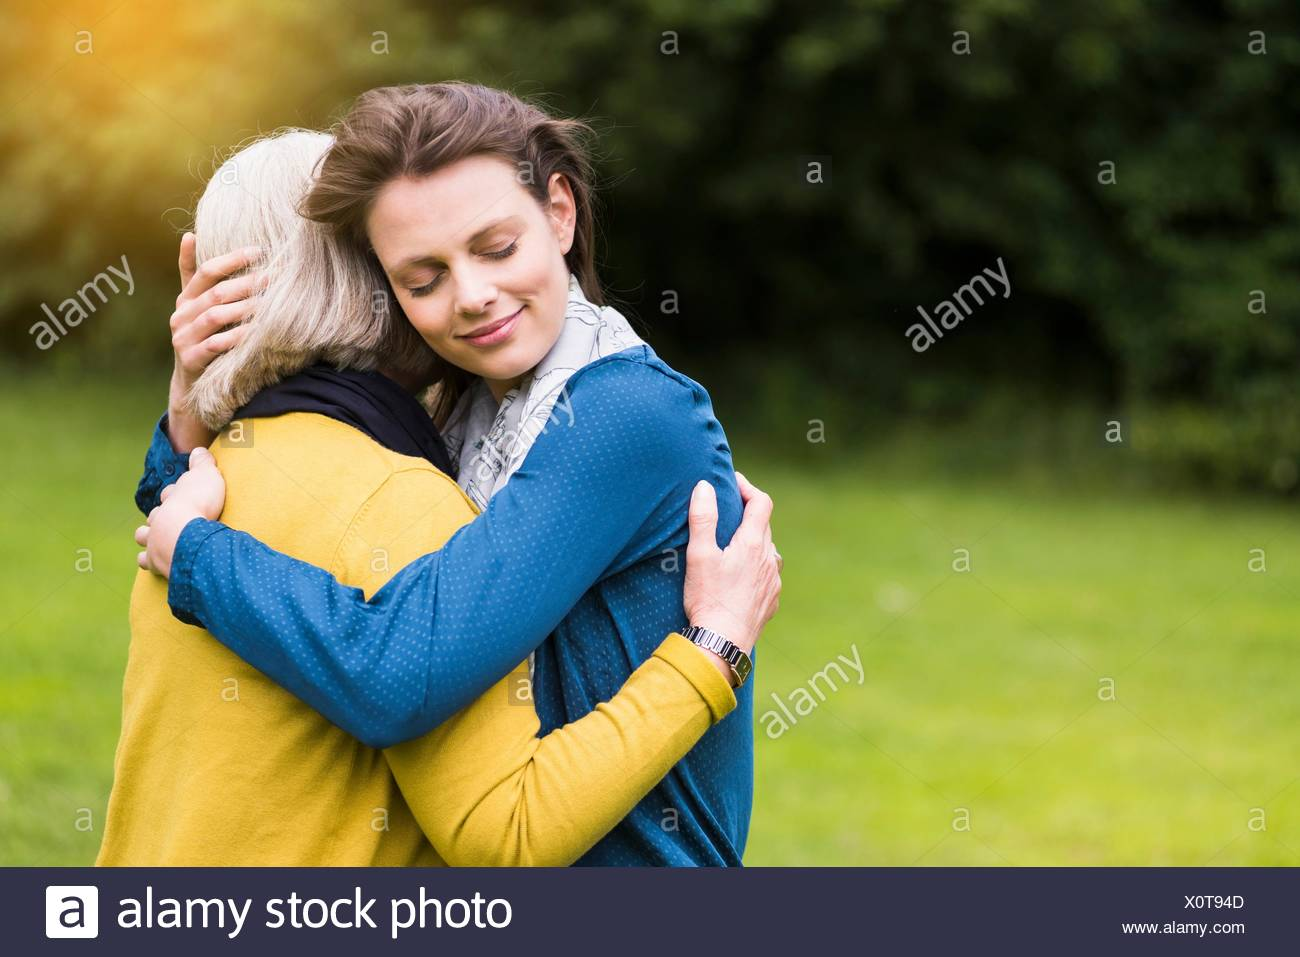 Senior woman and daughter hugging tenderly in park - Stock Image